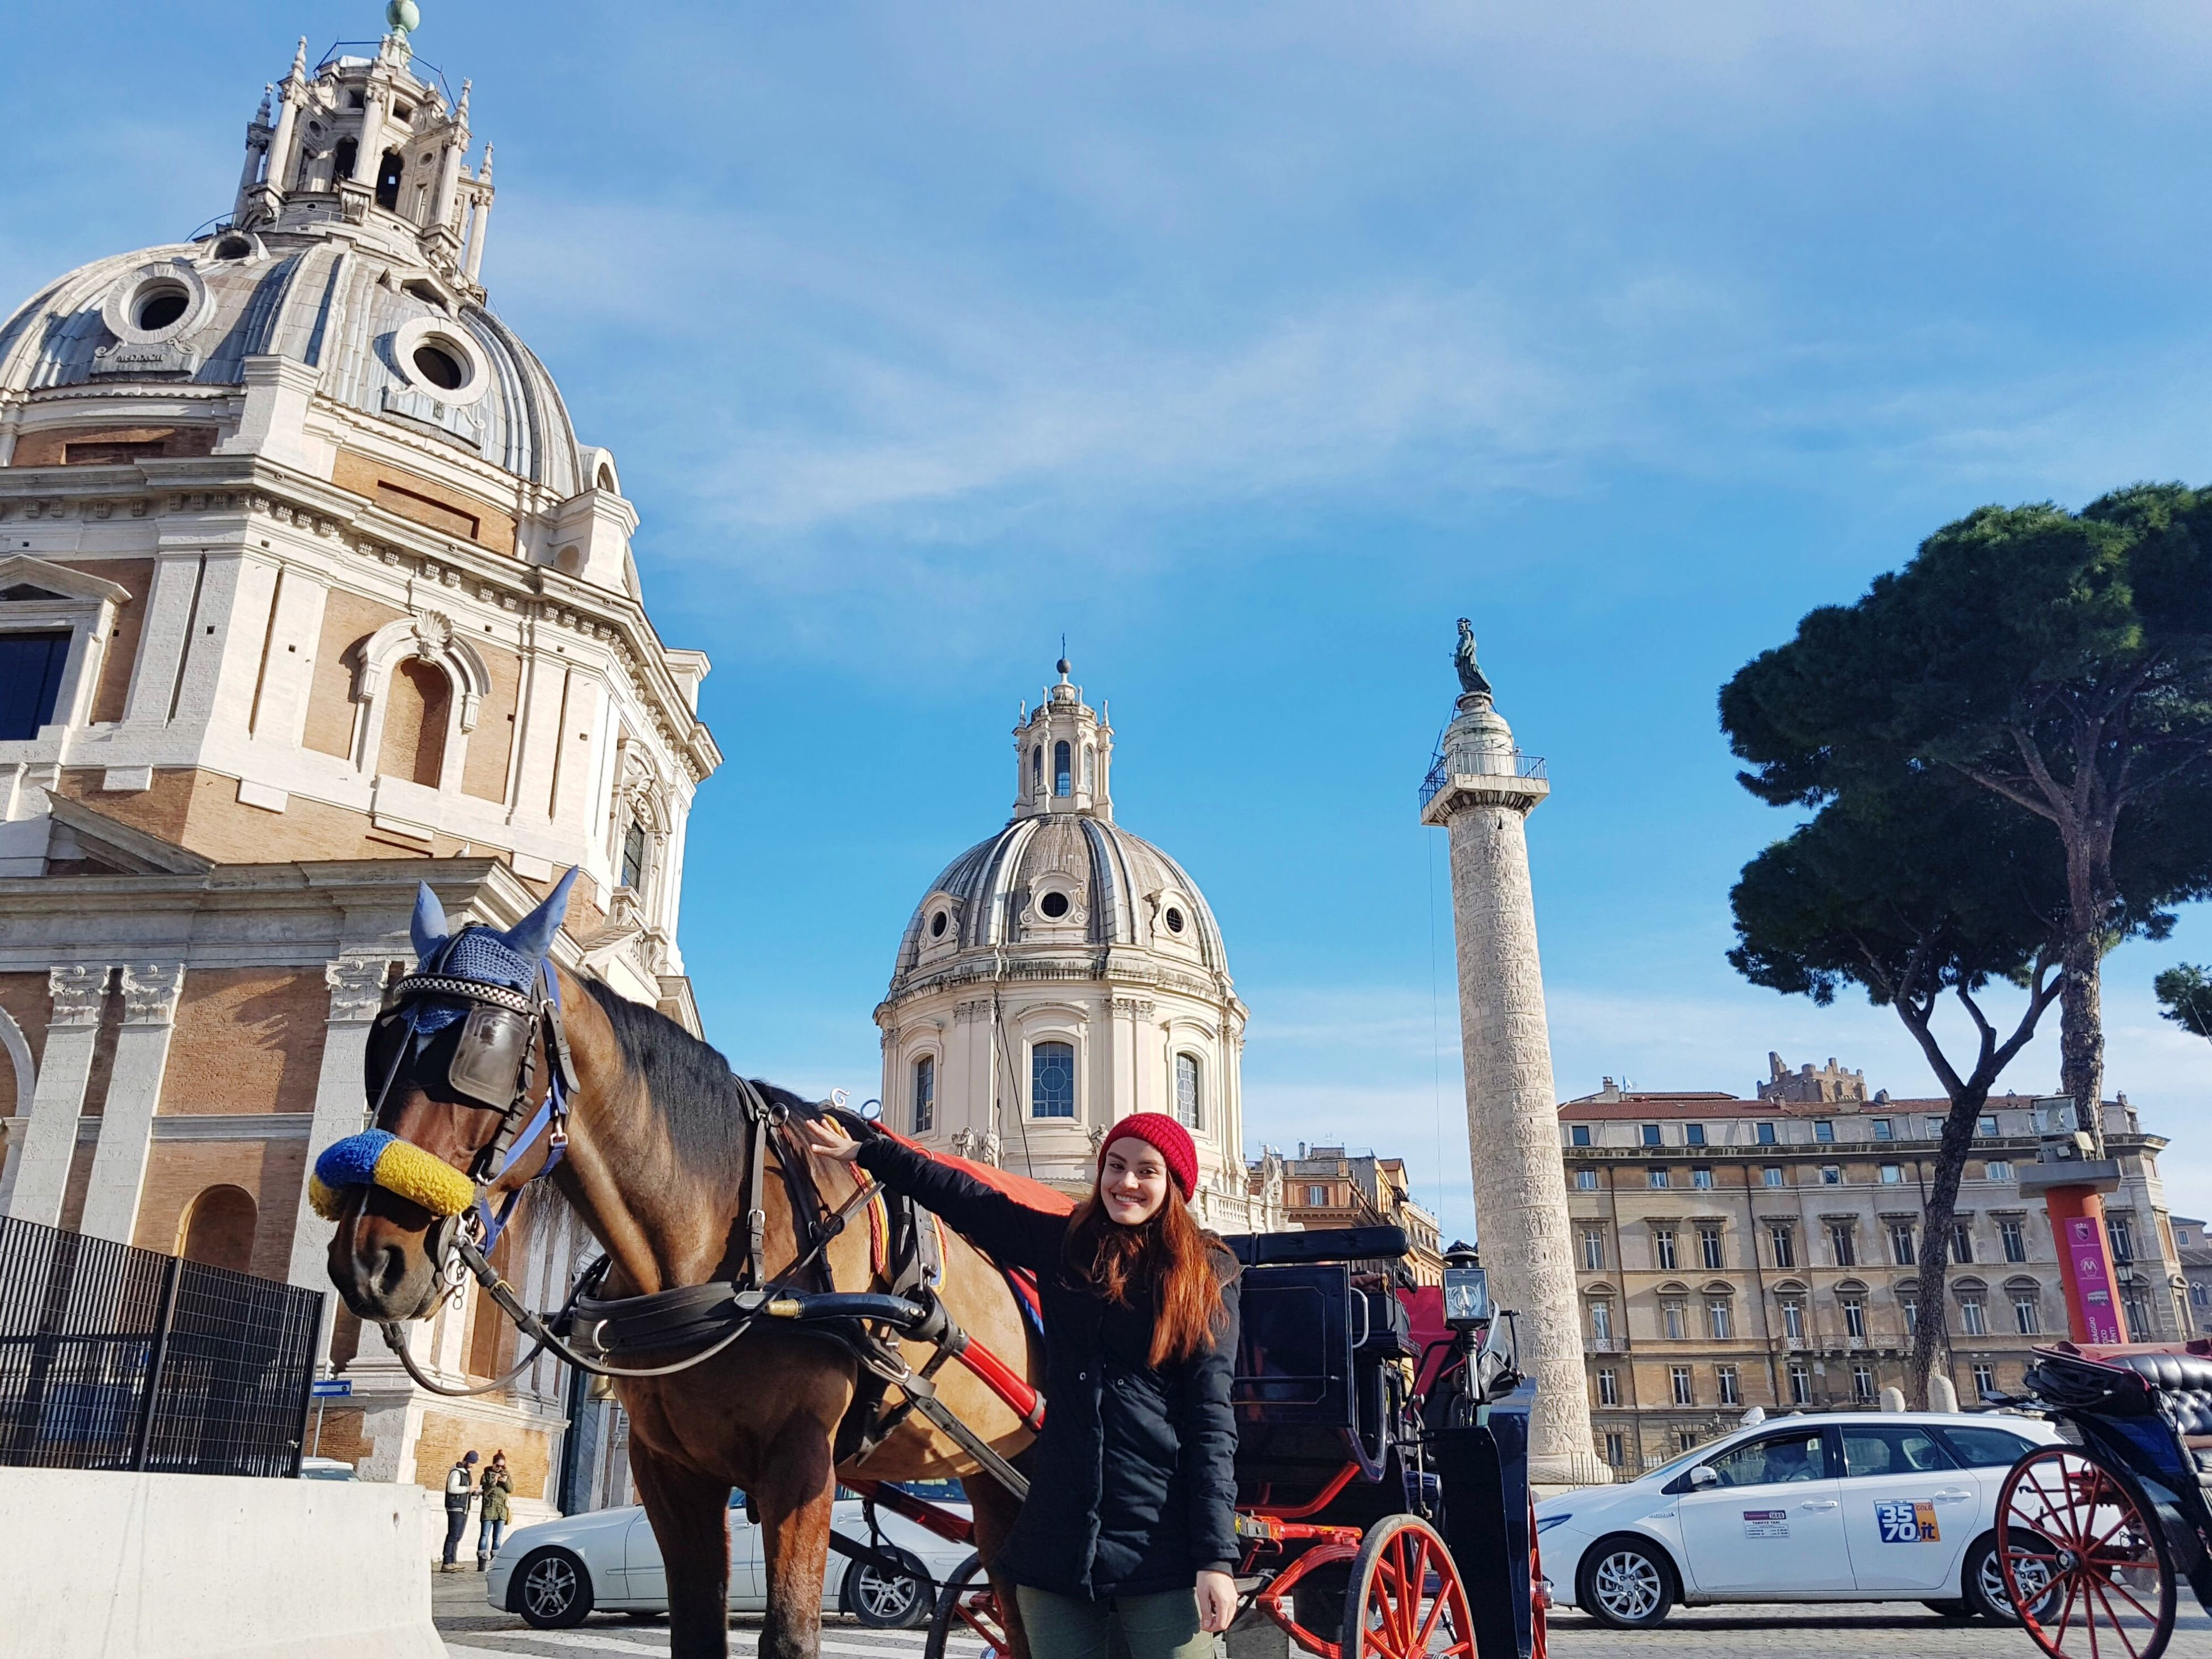 building exterior, animal themes, city, architecture, horse, transportation, travel destinations, domestic animals, working animal, built structure, outdoors, sky, adults only, horse cart, statue, carriage, day, people, adult